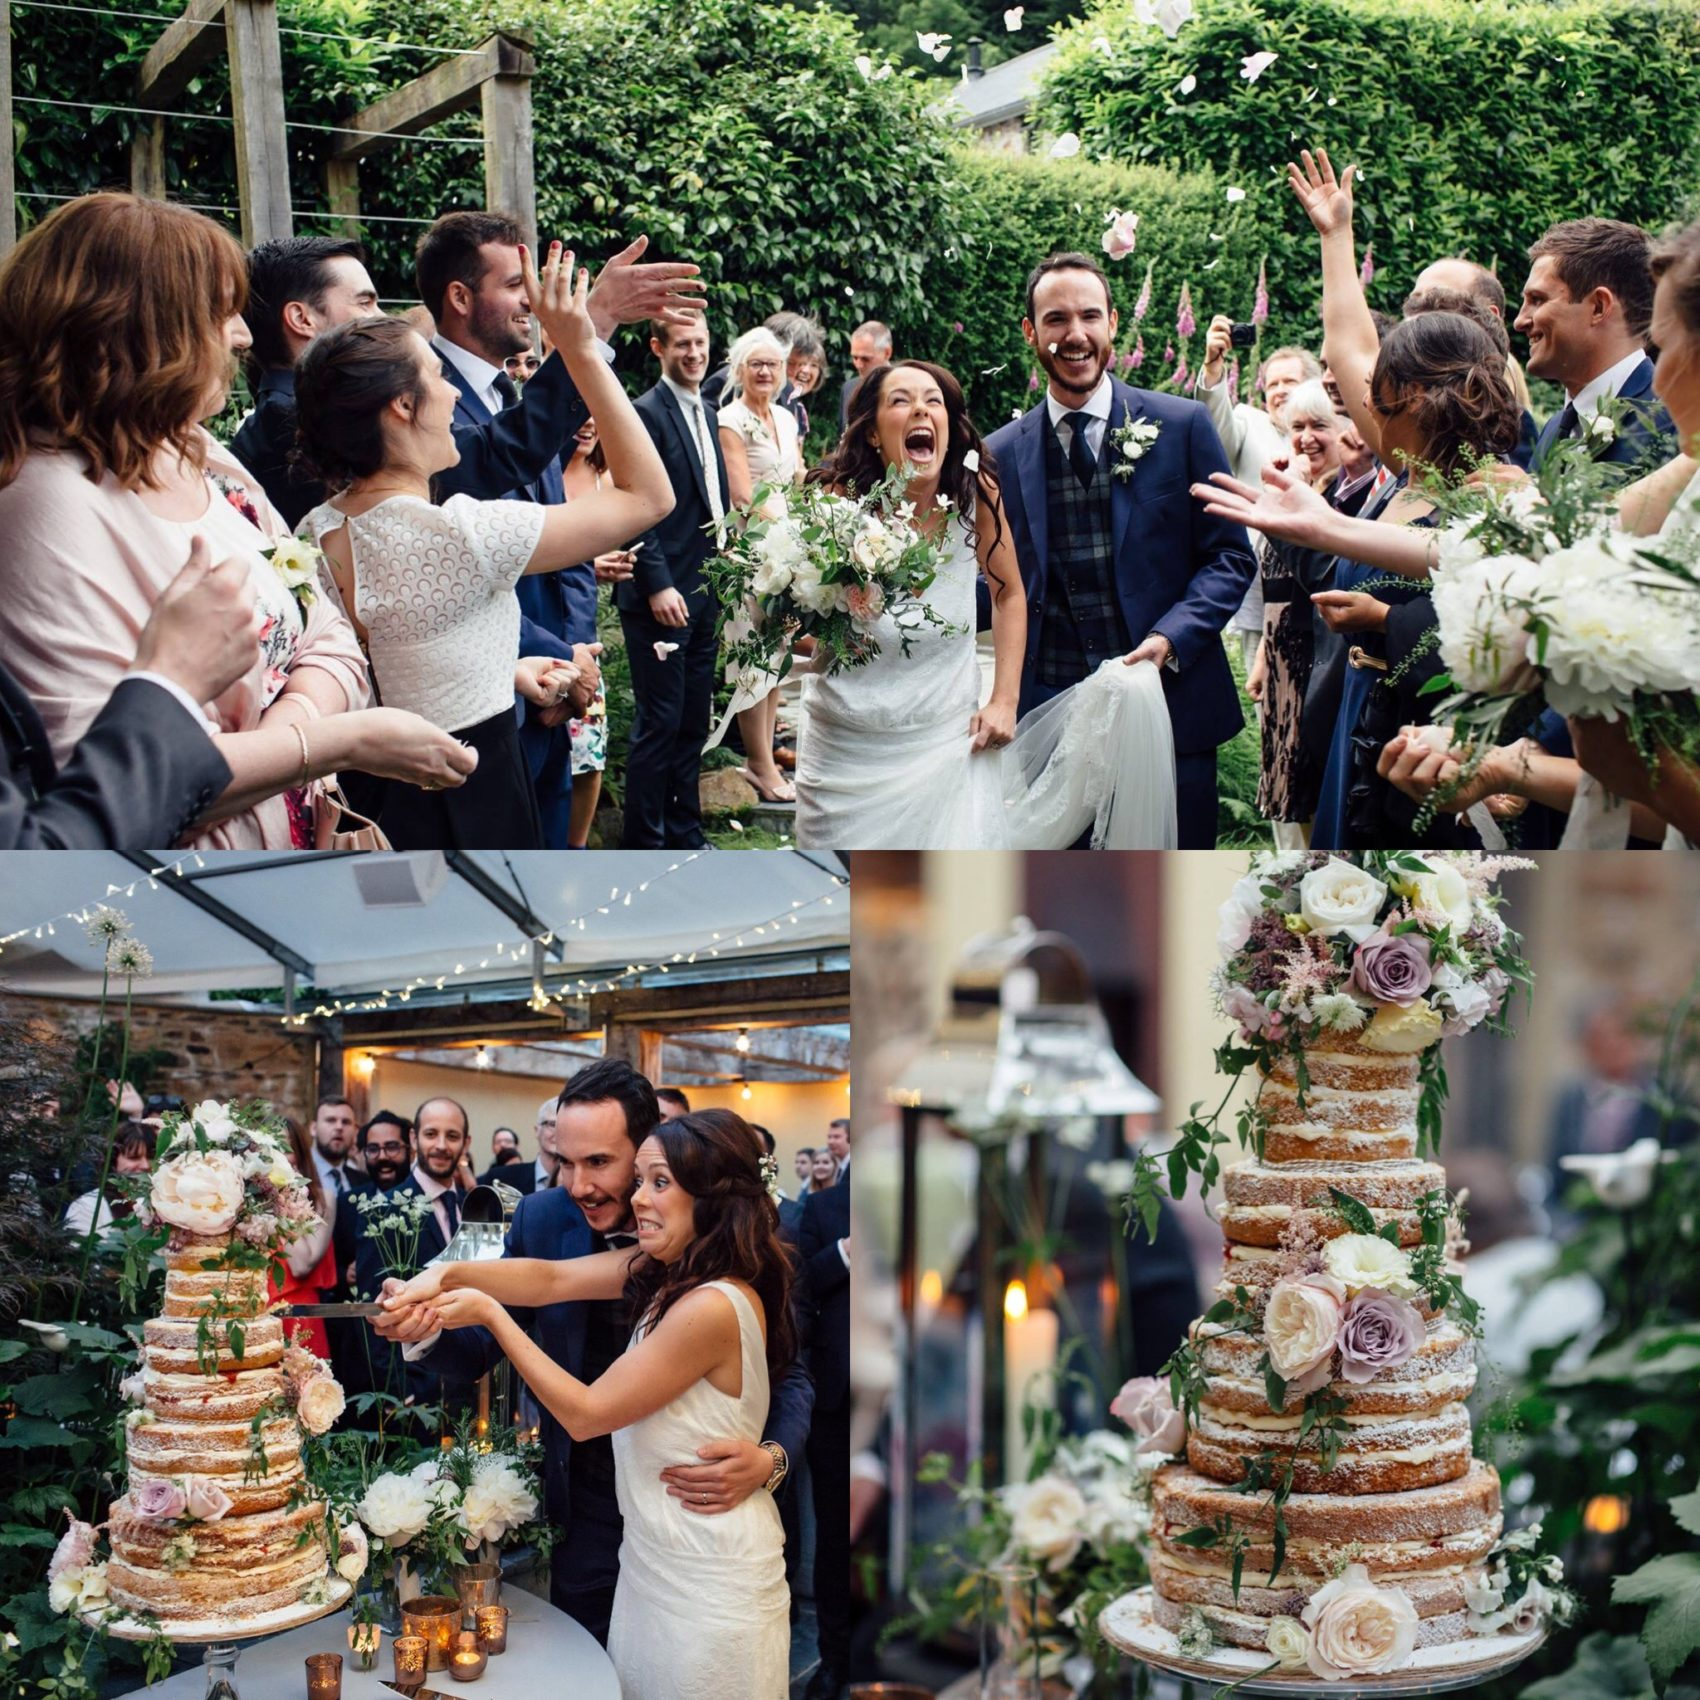 Happiness, wedding, wedding party, friends, guests, cake, tiers, cutting the cake, comical, confetti, shot, action, flowers, naked cake, freckle photography,